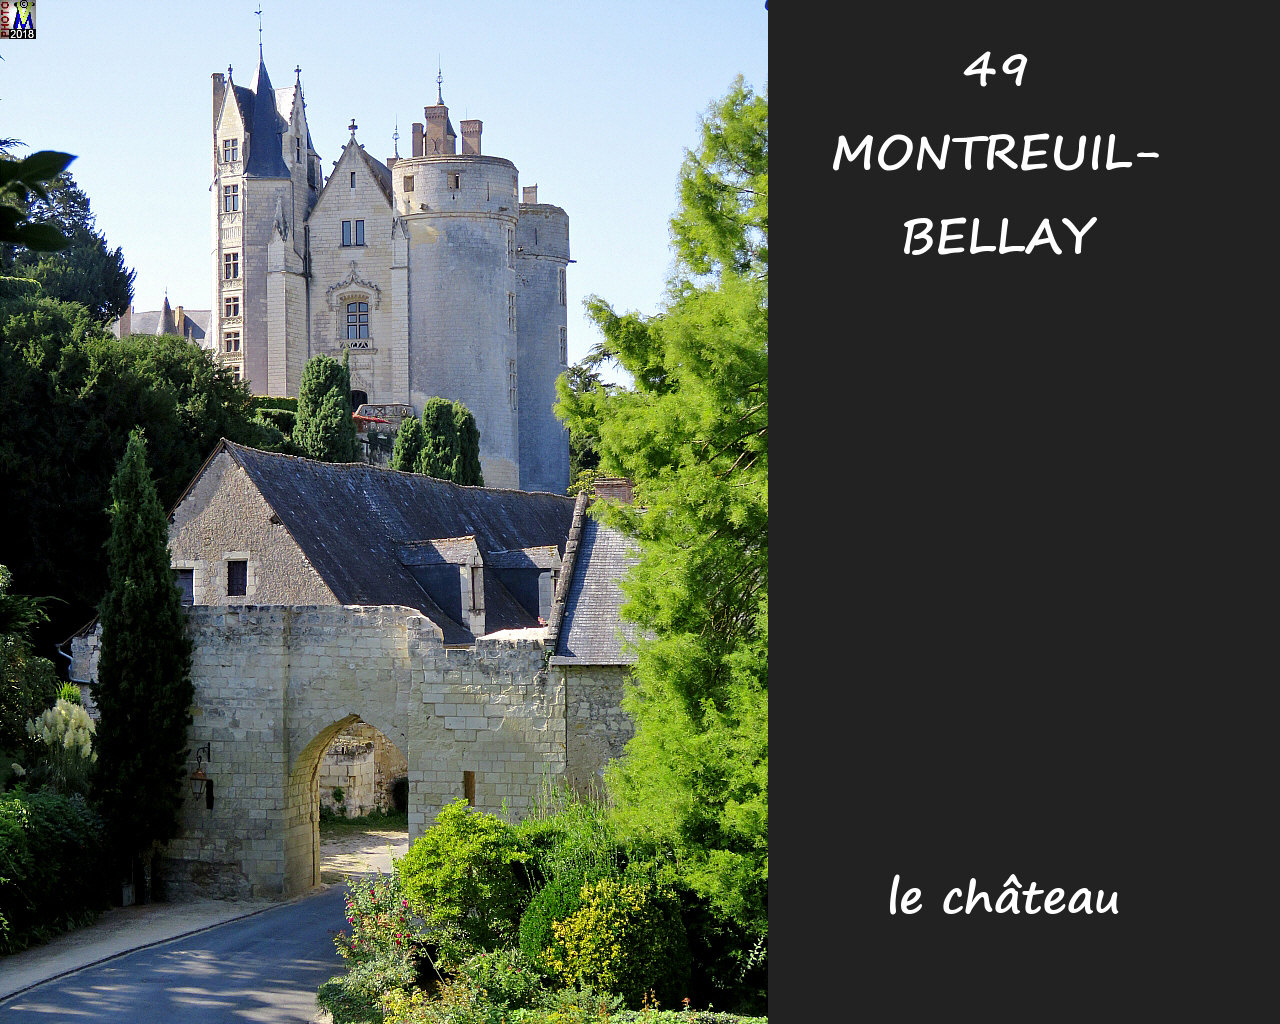 49MONTREUIL-BELLAY_chateau_1010.jpg